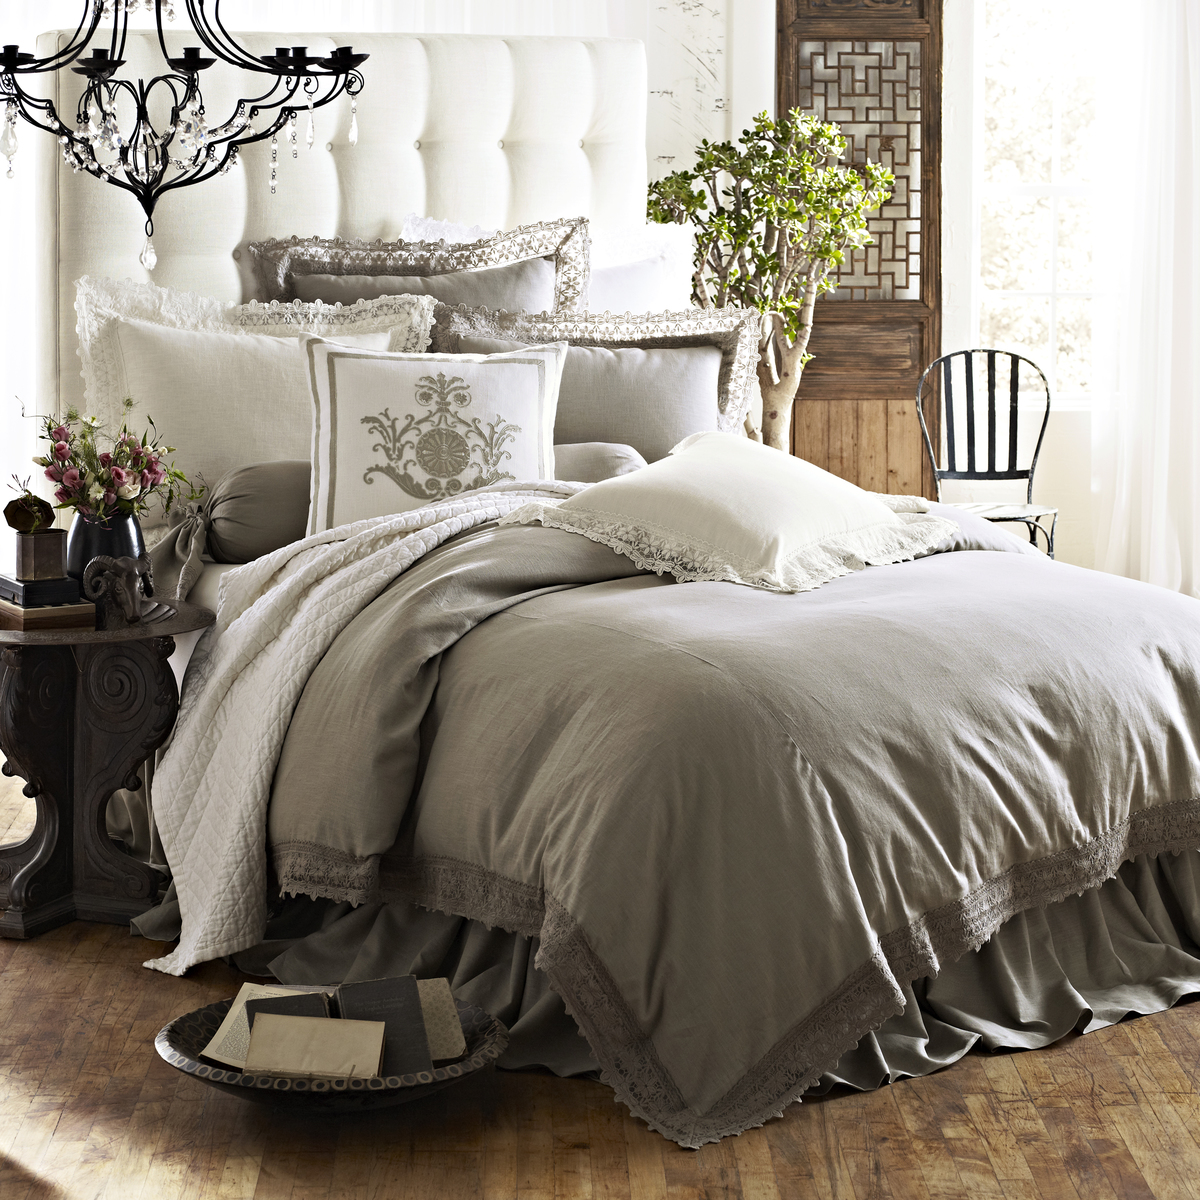 high end linens exhibiting luxurious vibes in your bedroom decoration homesfeed